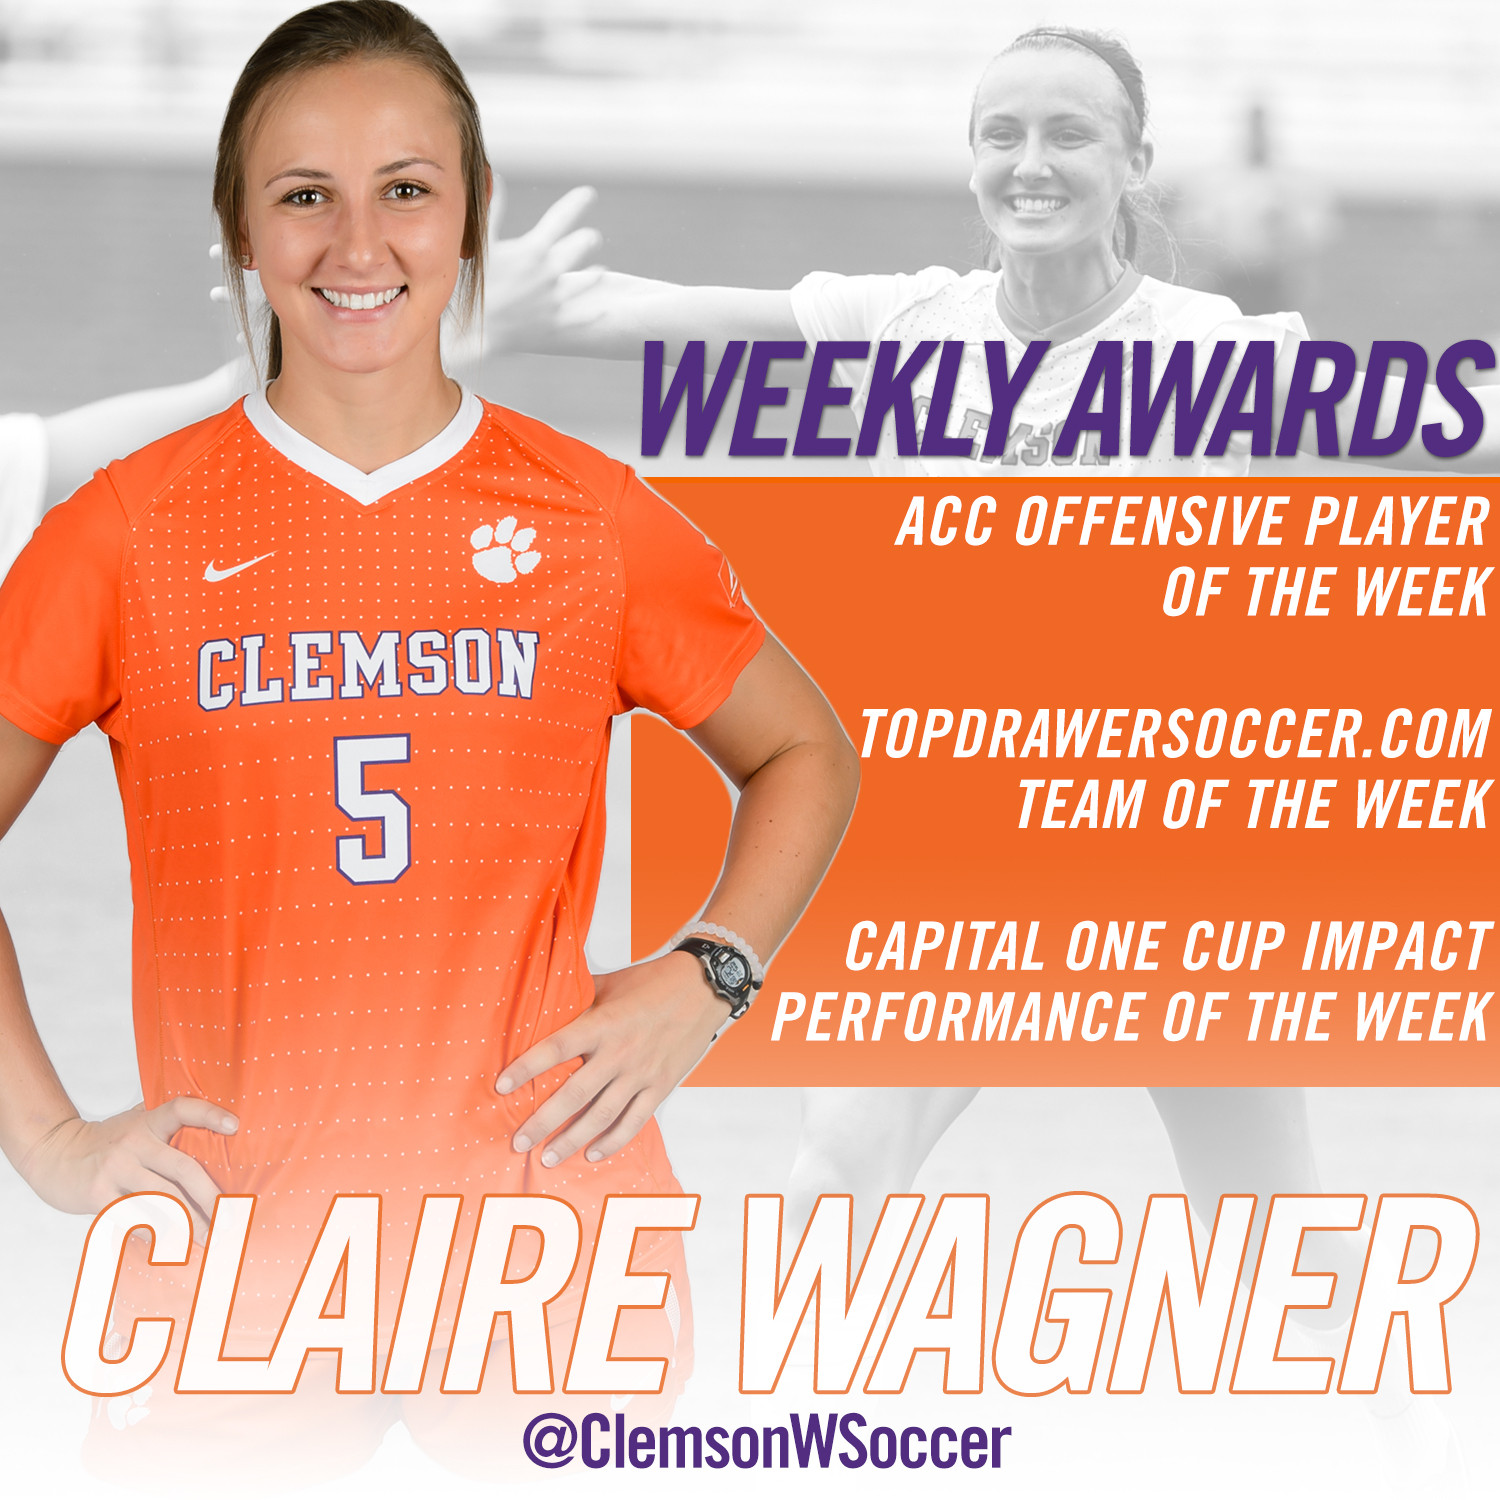 Wagner Receives Multiple Weekly Awards